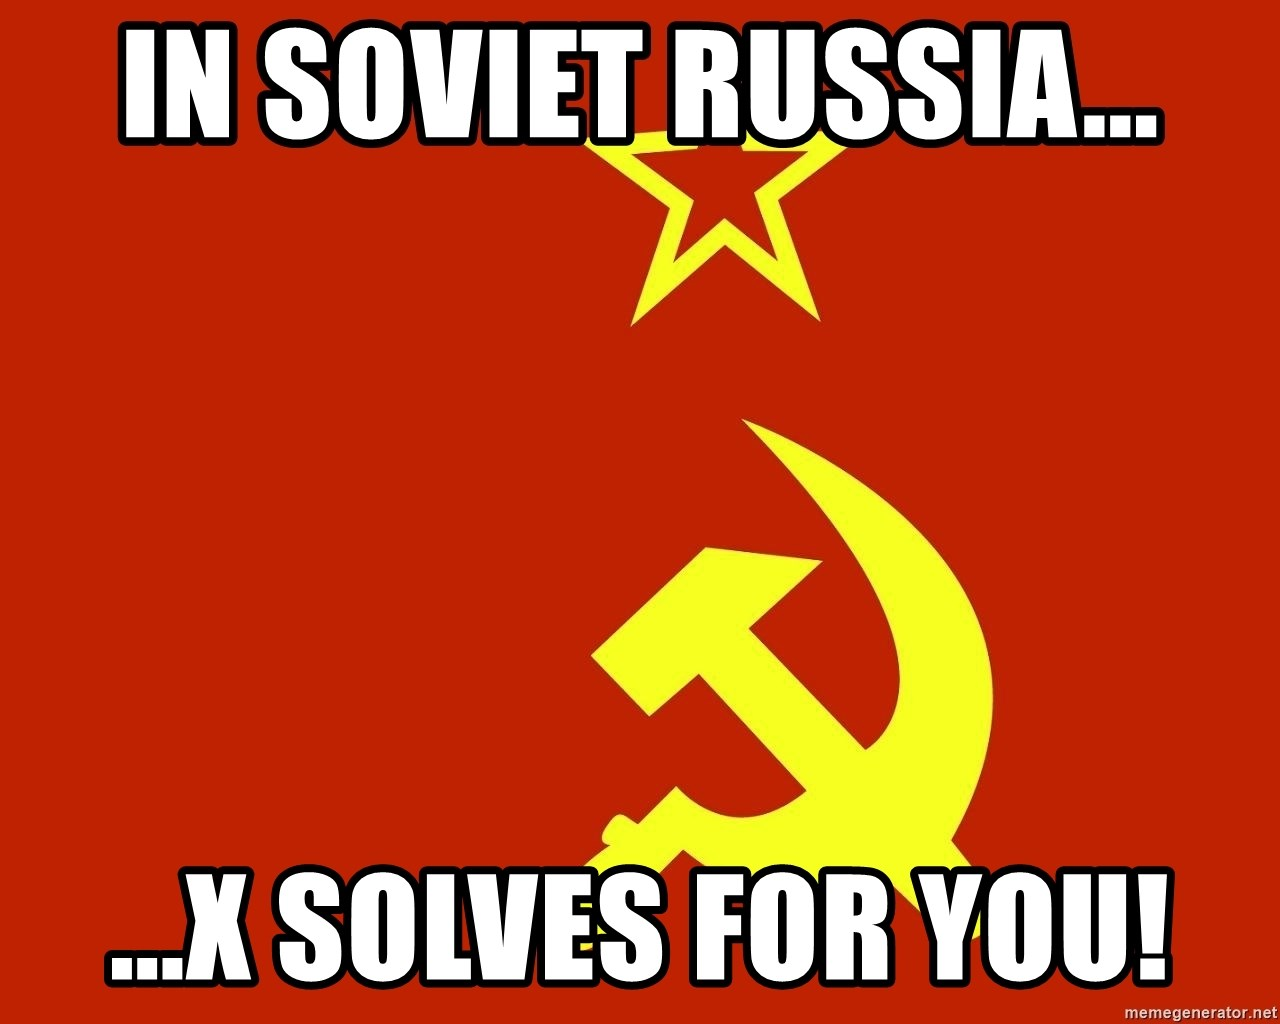 In Soviet Russia - IN SOVIET RUSSIA... ...X SOLVES FOR YOU!